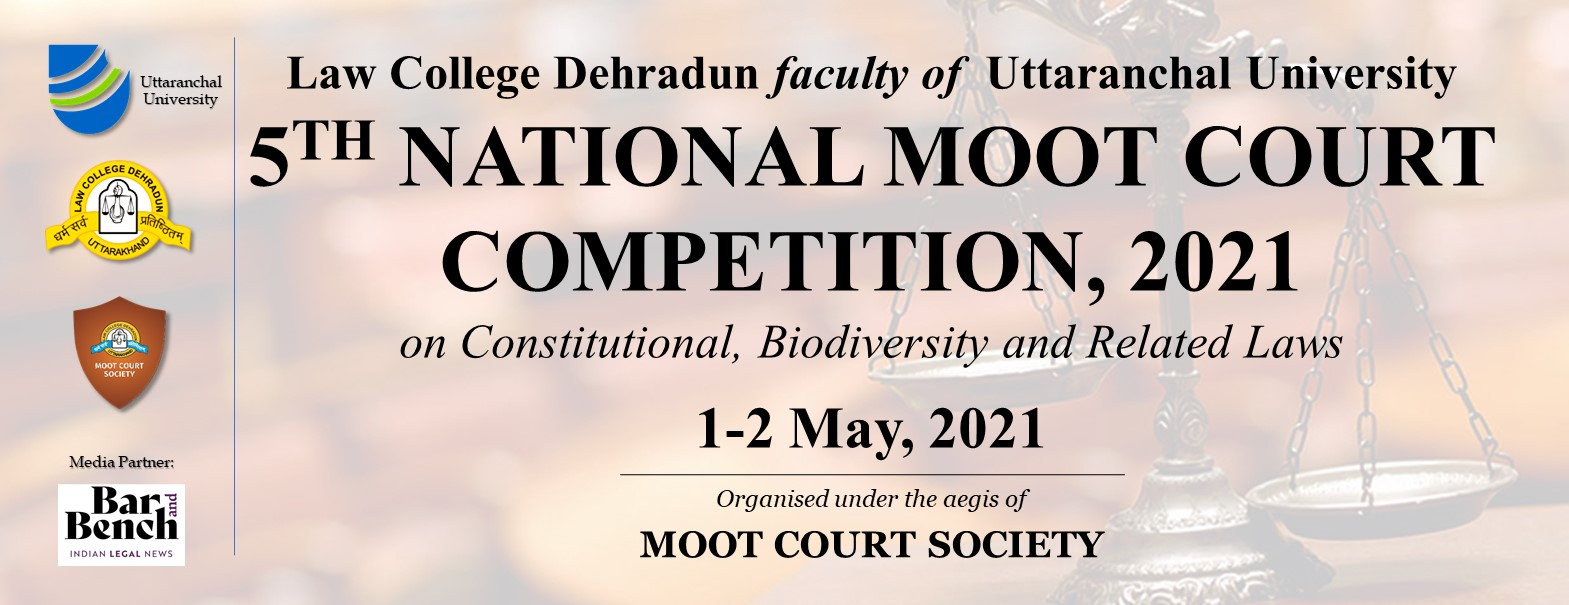 Law College Dehradun 5th National Moot on Constitutional Law [1-2 May 2021, Prizes Worth Rs. 1 Lakh]: Register by March 25